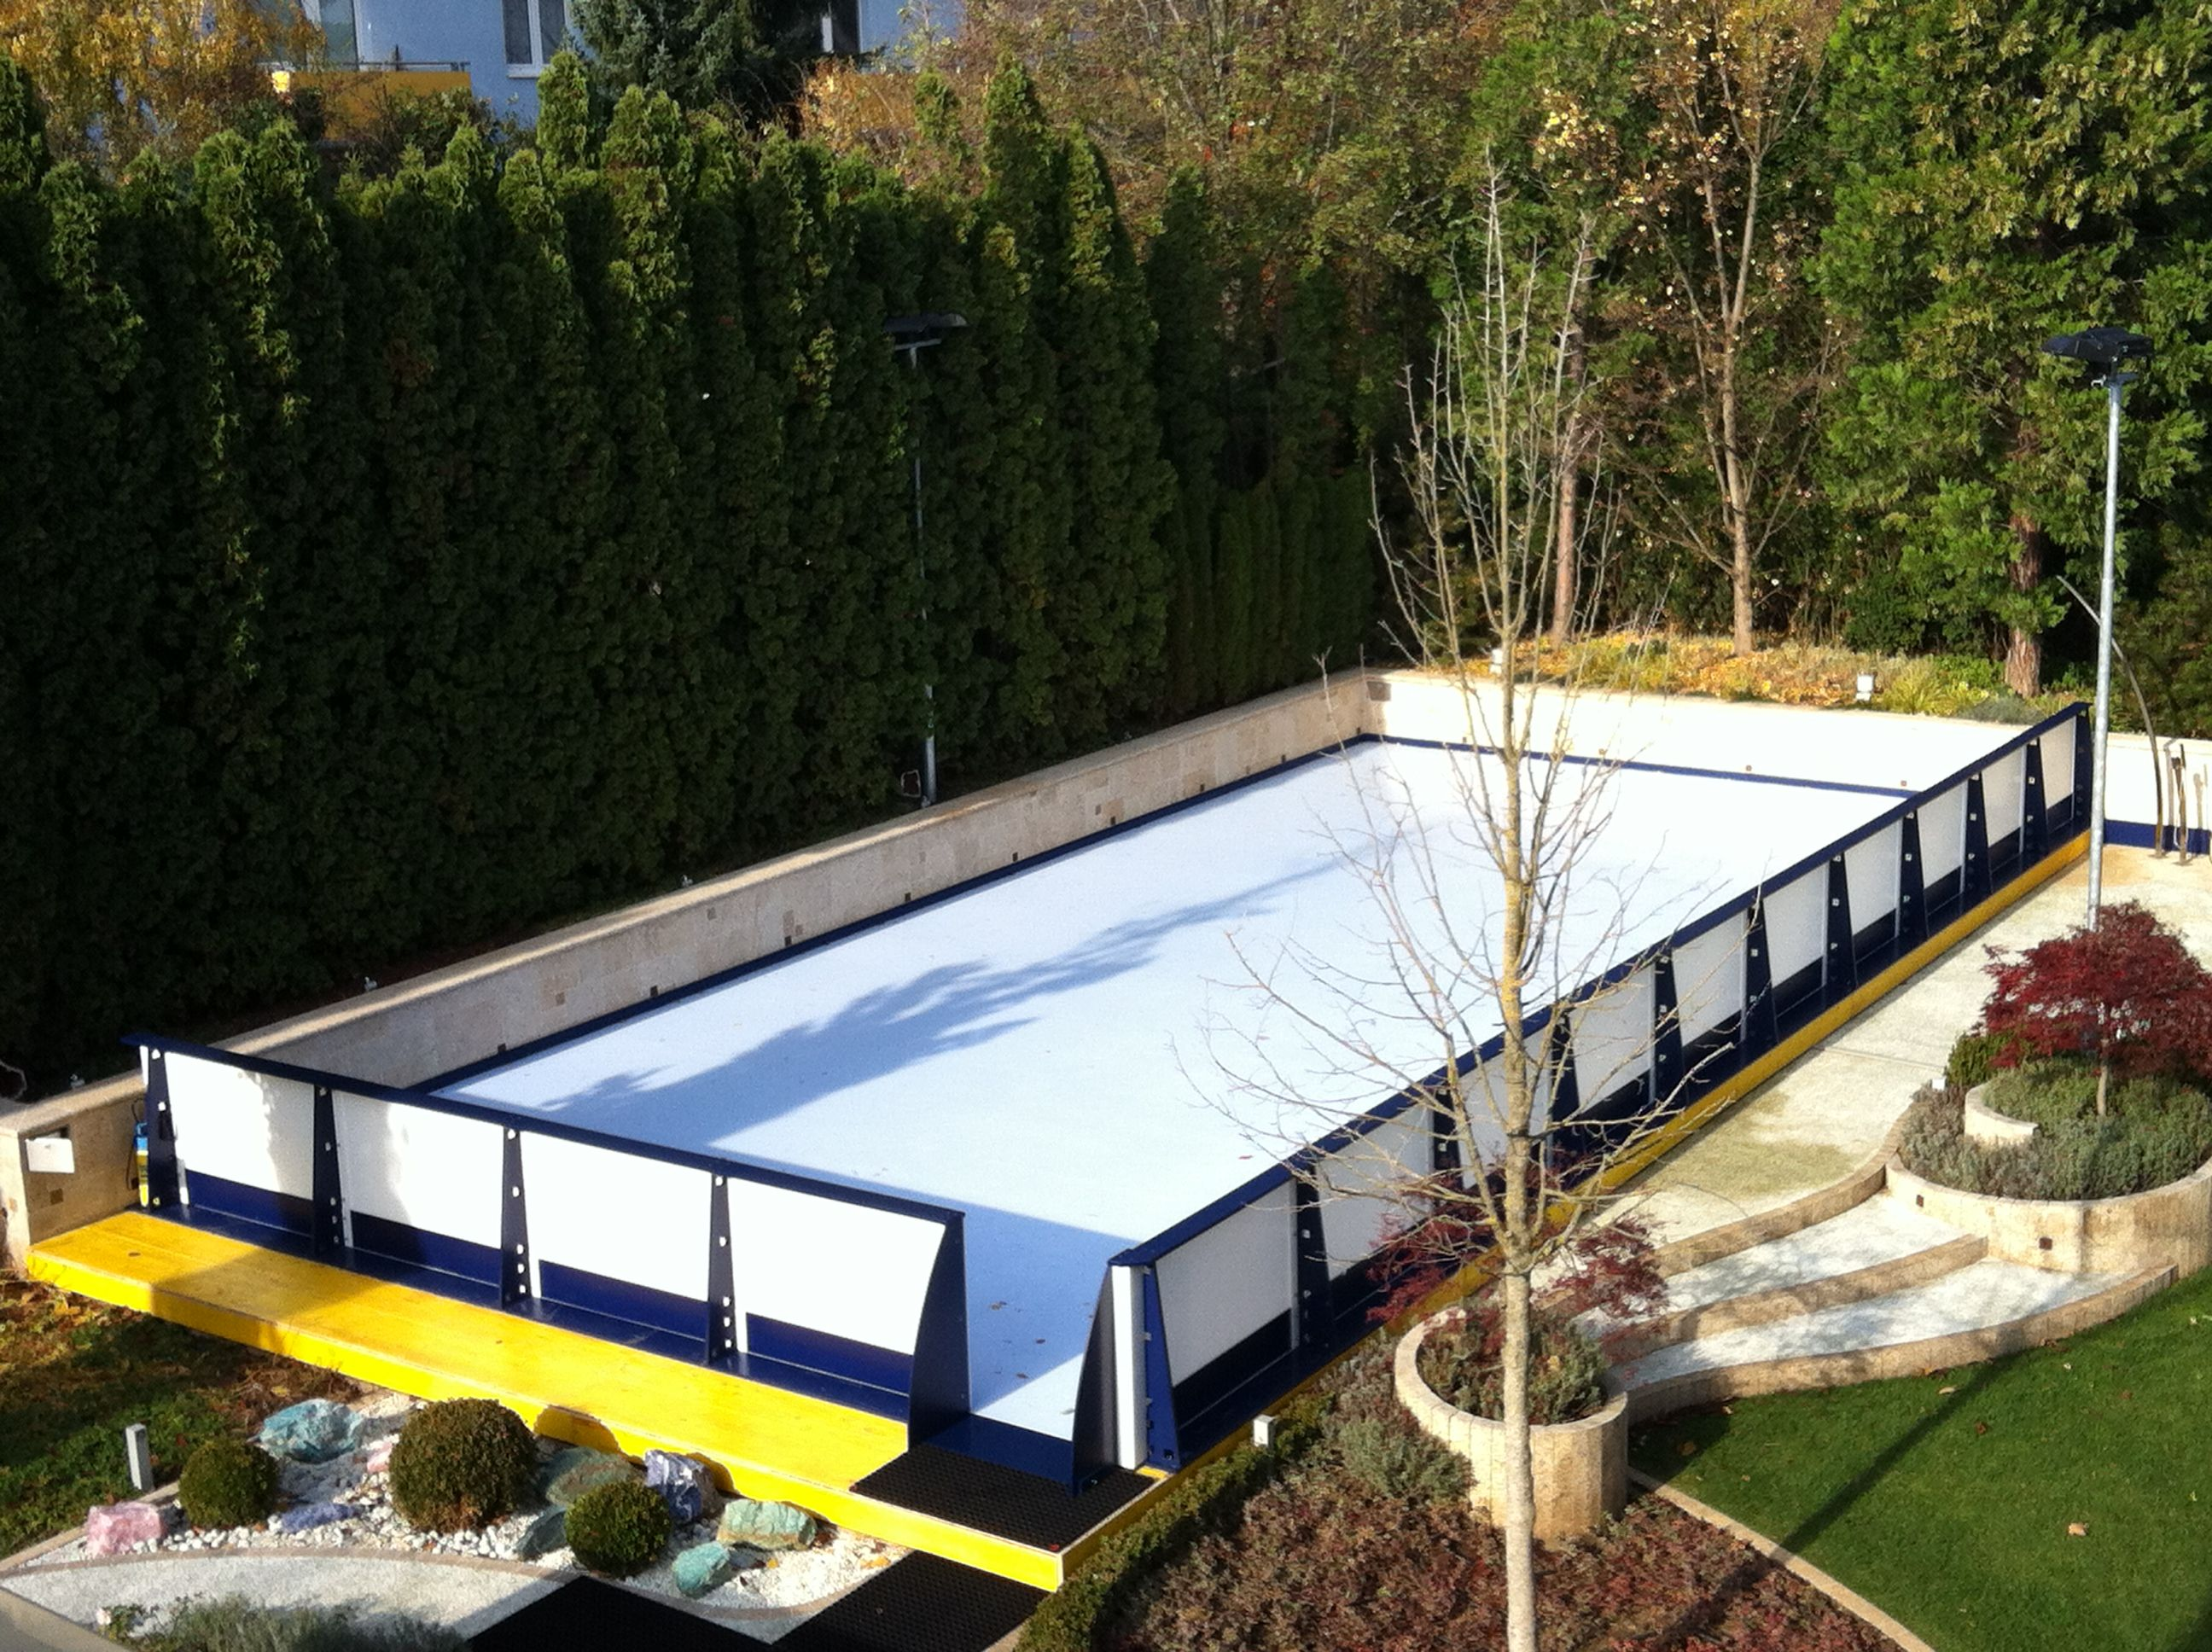 Awesome Backyard Synthetic Ice Rink Built Over A Pool In Vienna Great Ideas